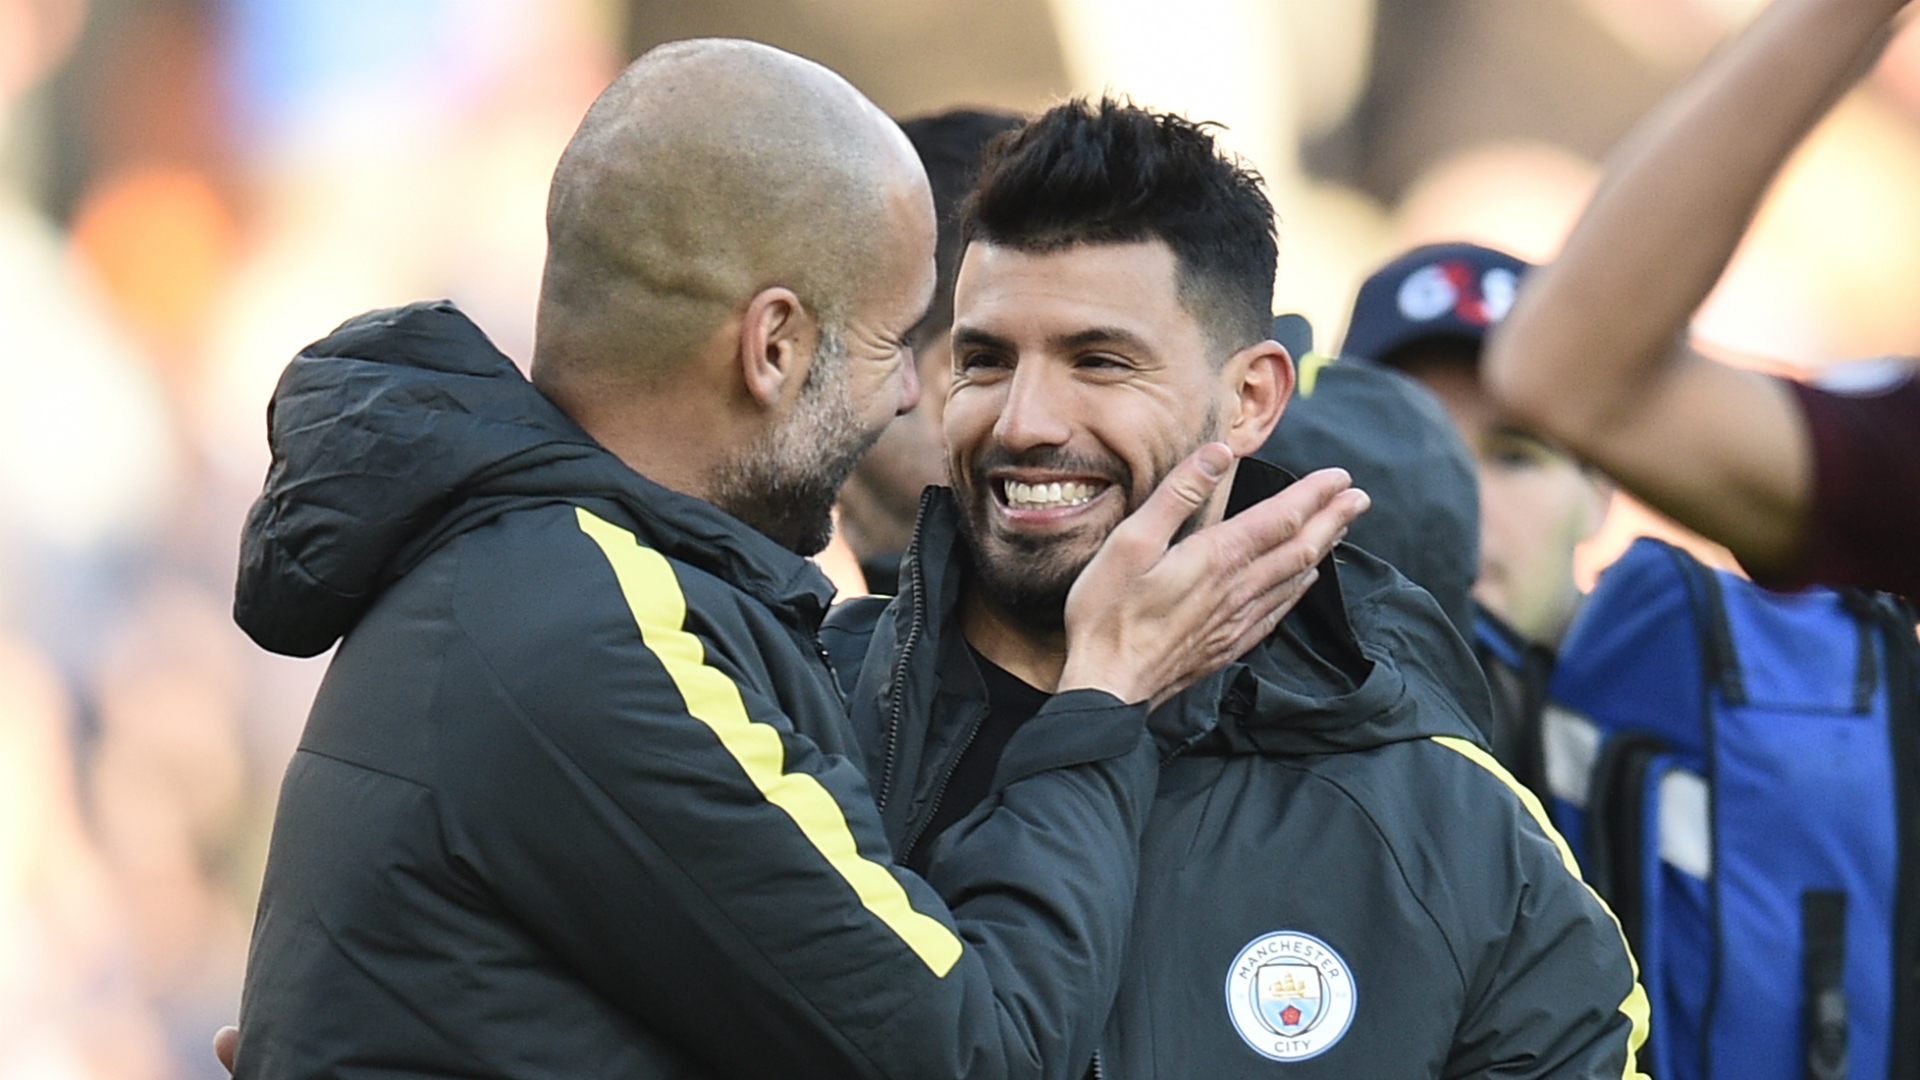 Staying Power - Pep and Sergio can work together over the next three-and-a-half years to bring glory to City.